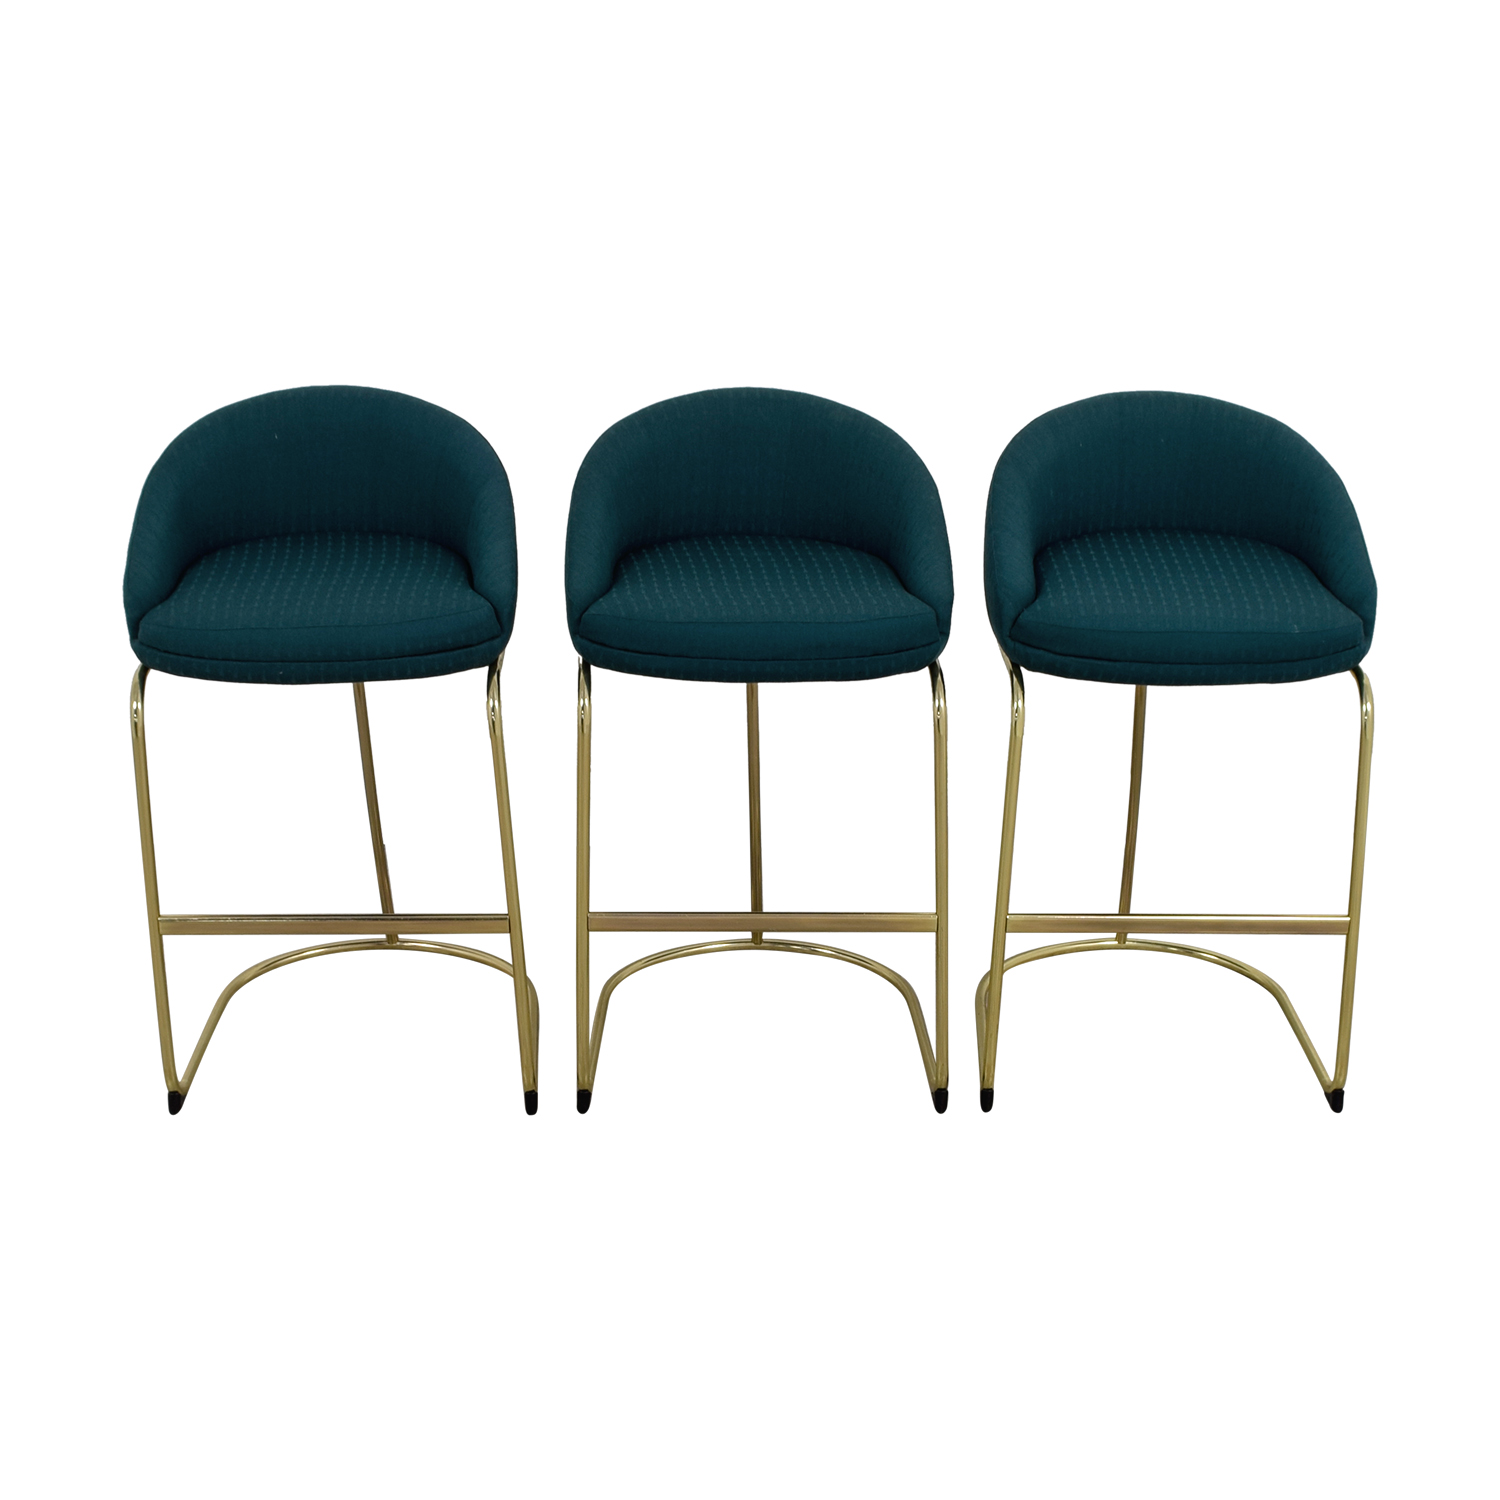 57 Off Vintage Teal Upholstered Bar Stools Chairs